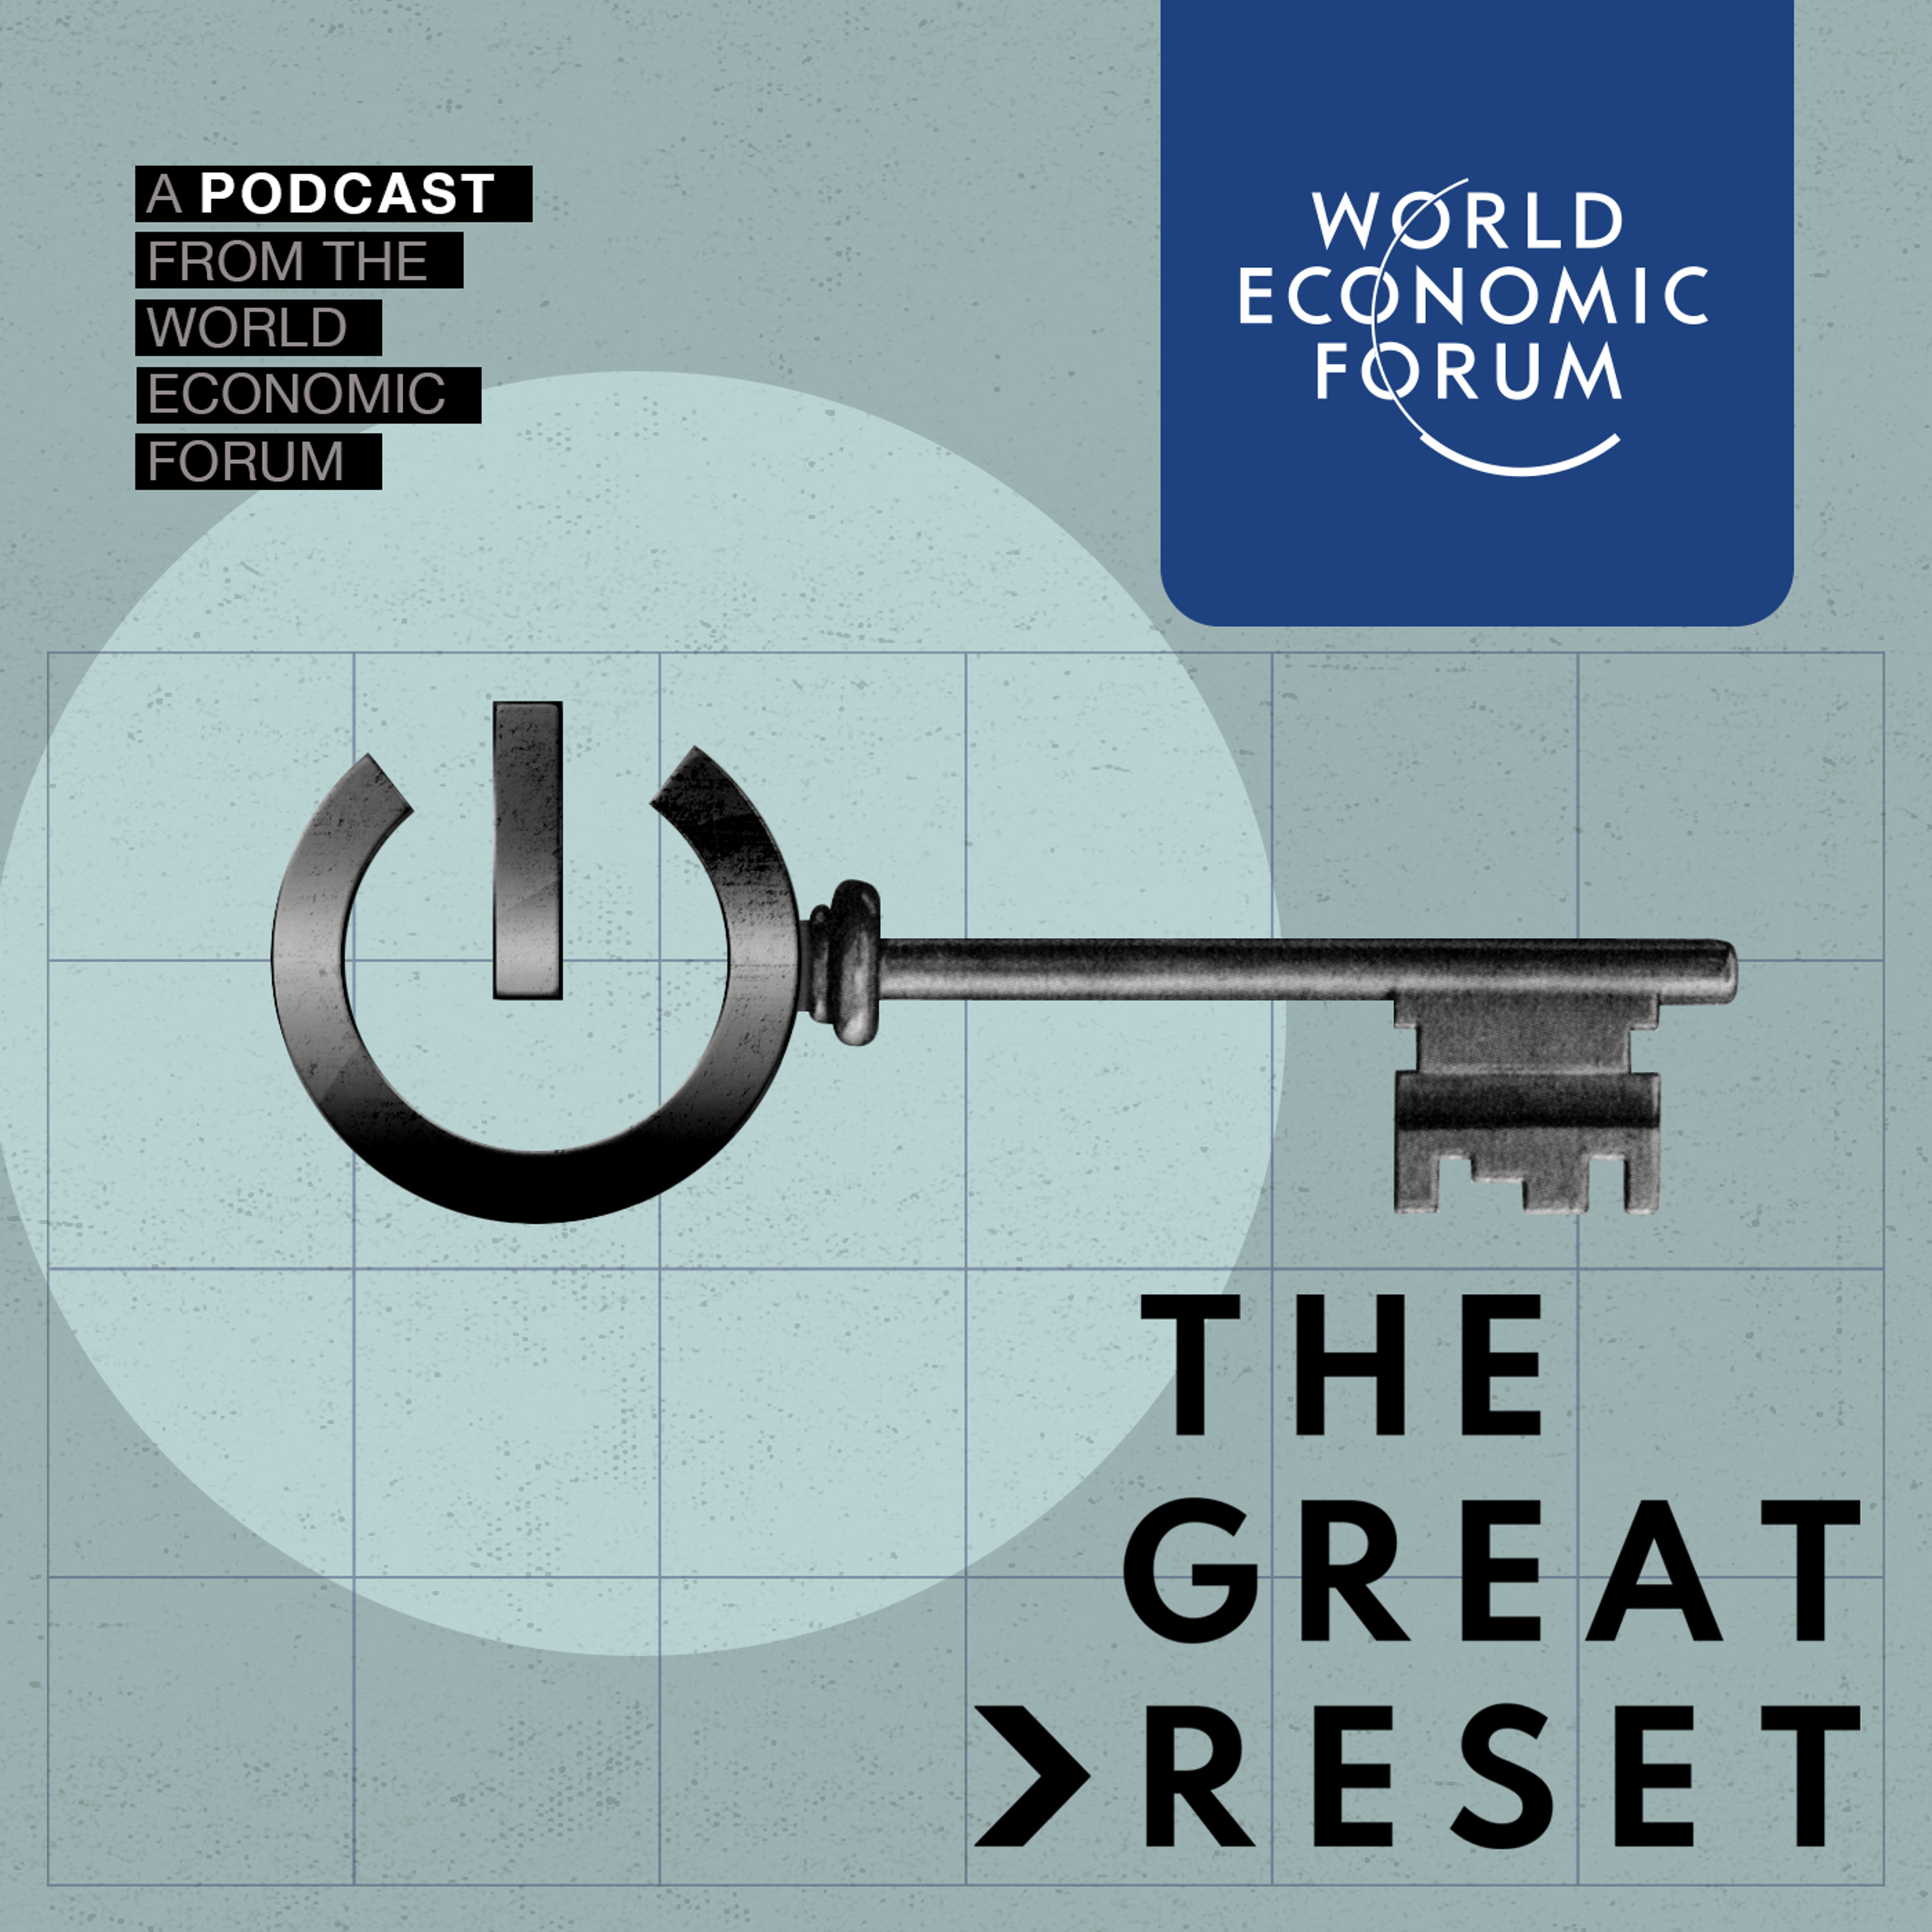 The Great Reset: Sustainable Development Impact Summit - Day 1